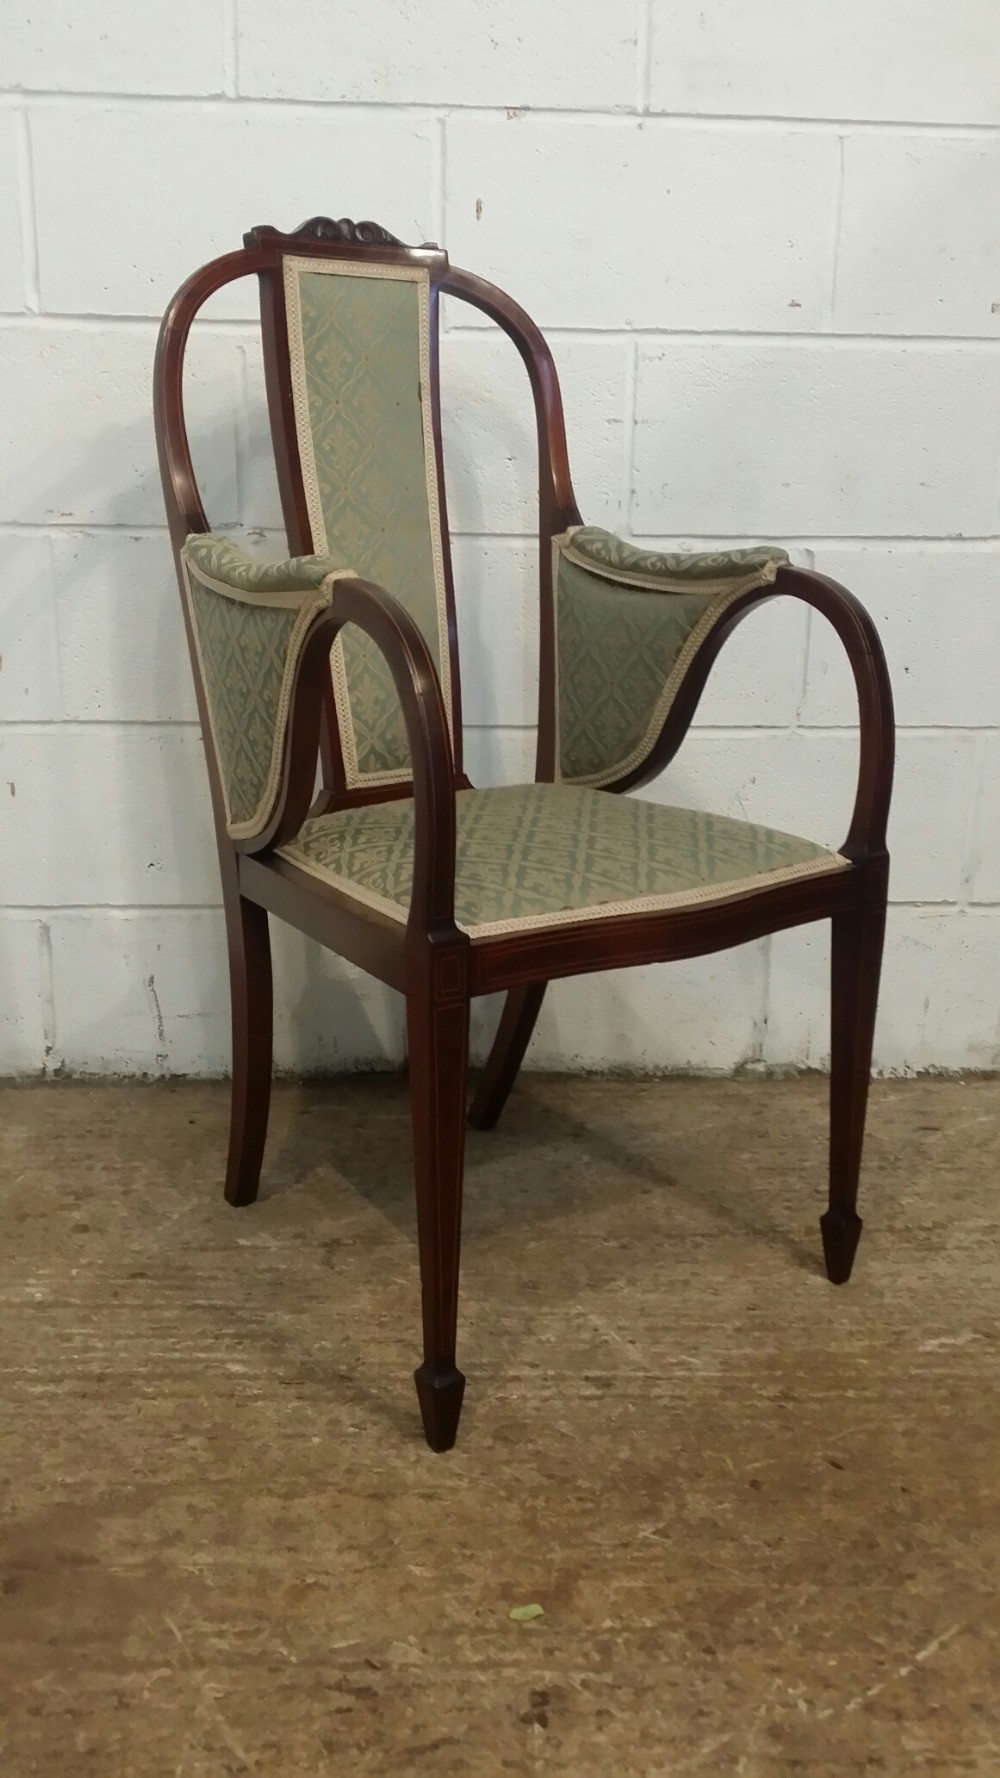 Fabulous Antique Edwardian Aesthetic Mahogany Library Desk Chair Pabps2019 Chair Design Images Pabps2019Com